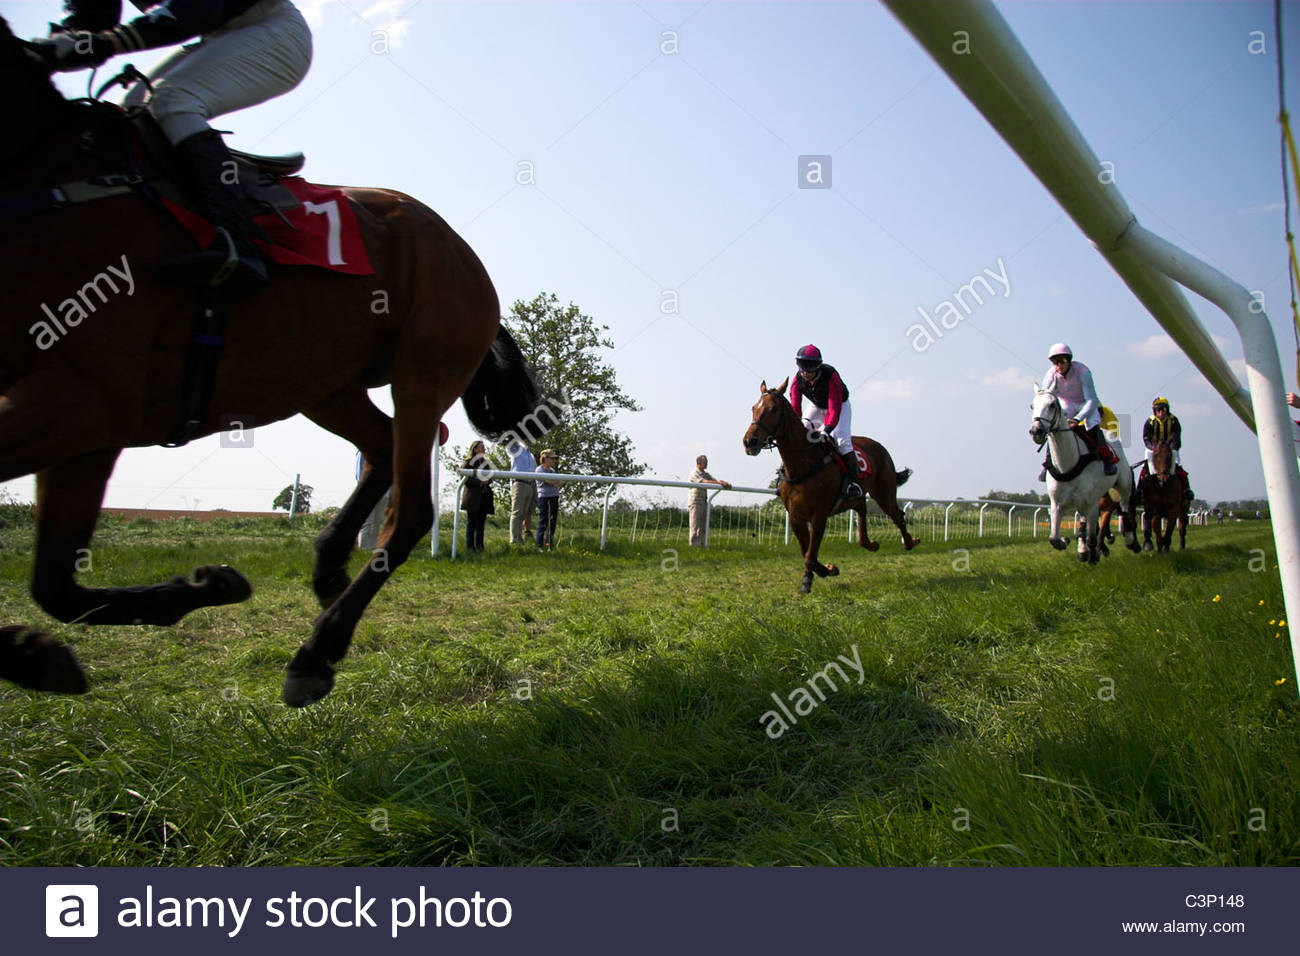 the-berkeley-hunt-point-to-point-horse-racing-trials-gloucestershire-C3P148.jpg